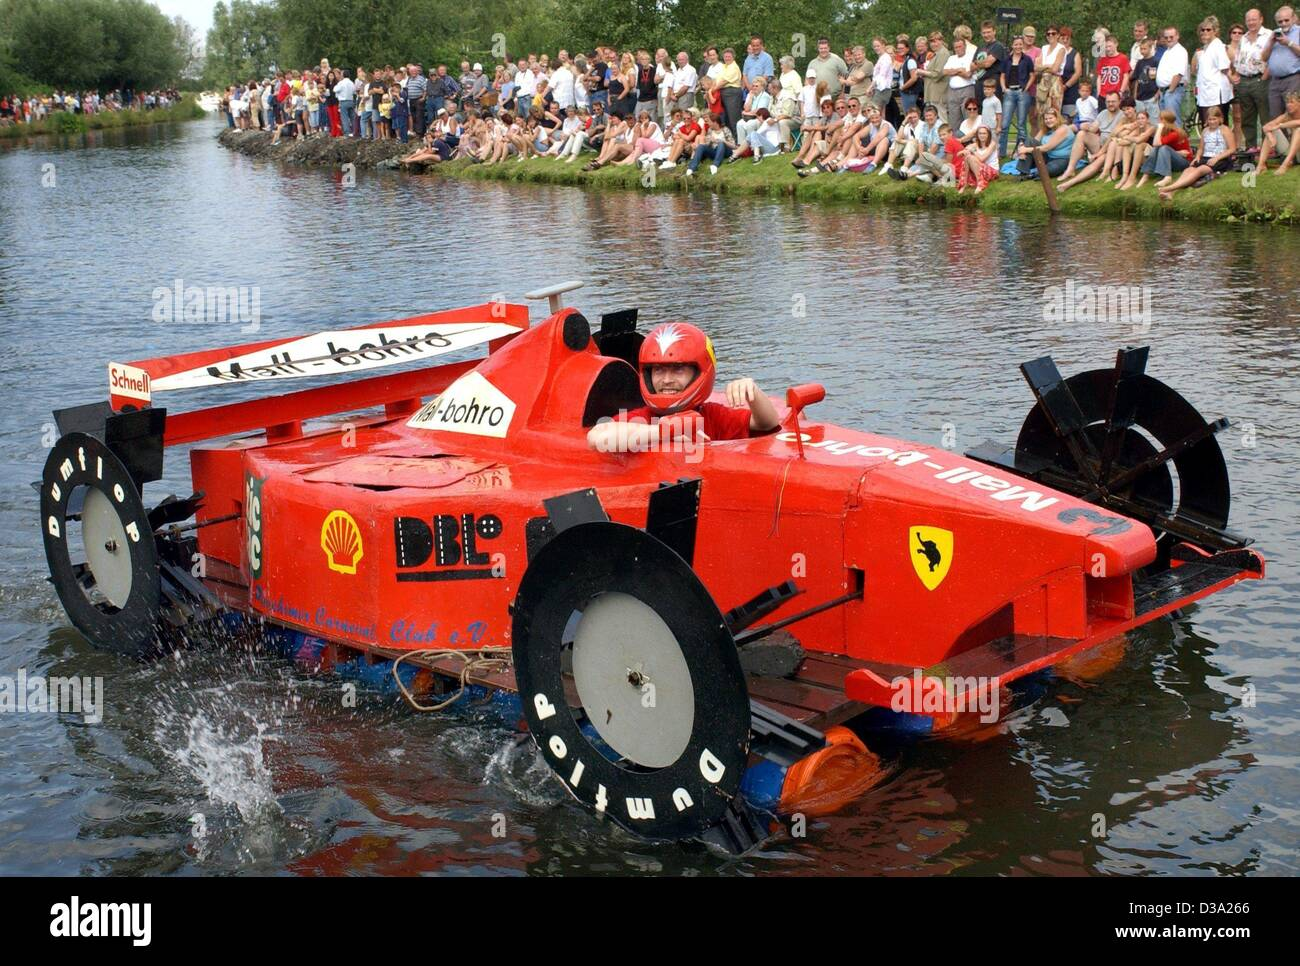 (dpa) - A swimming version of Schumacher's red Ferrari 'drives' along the river during the 8th 'Bath - Stock Image